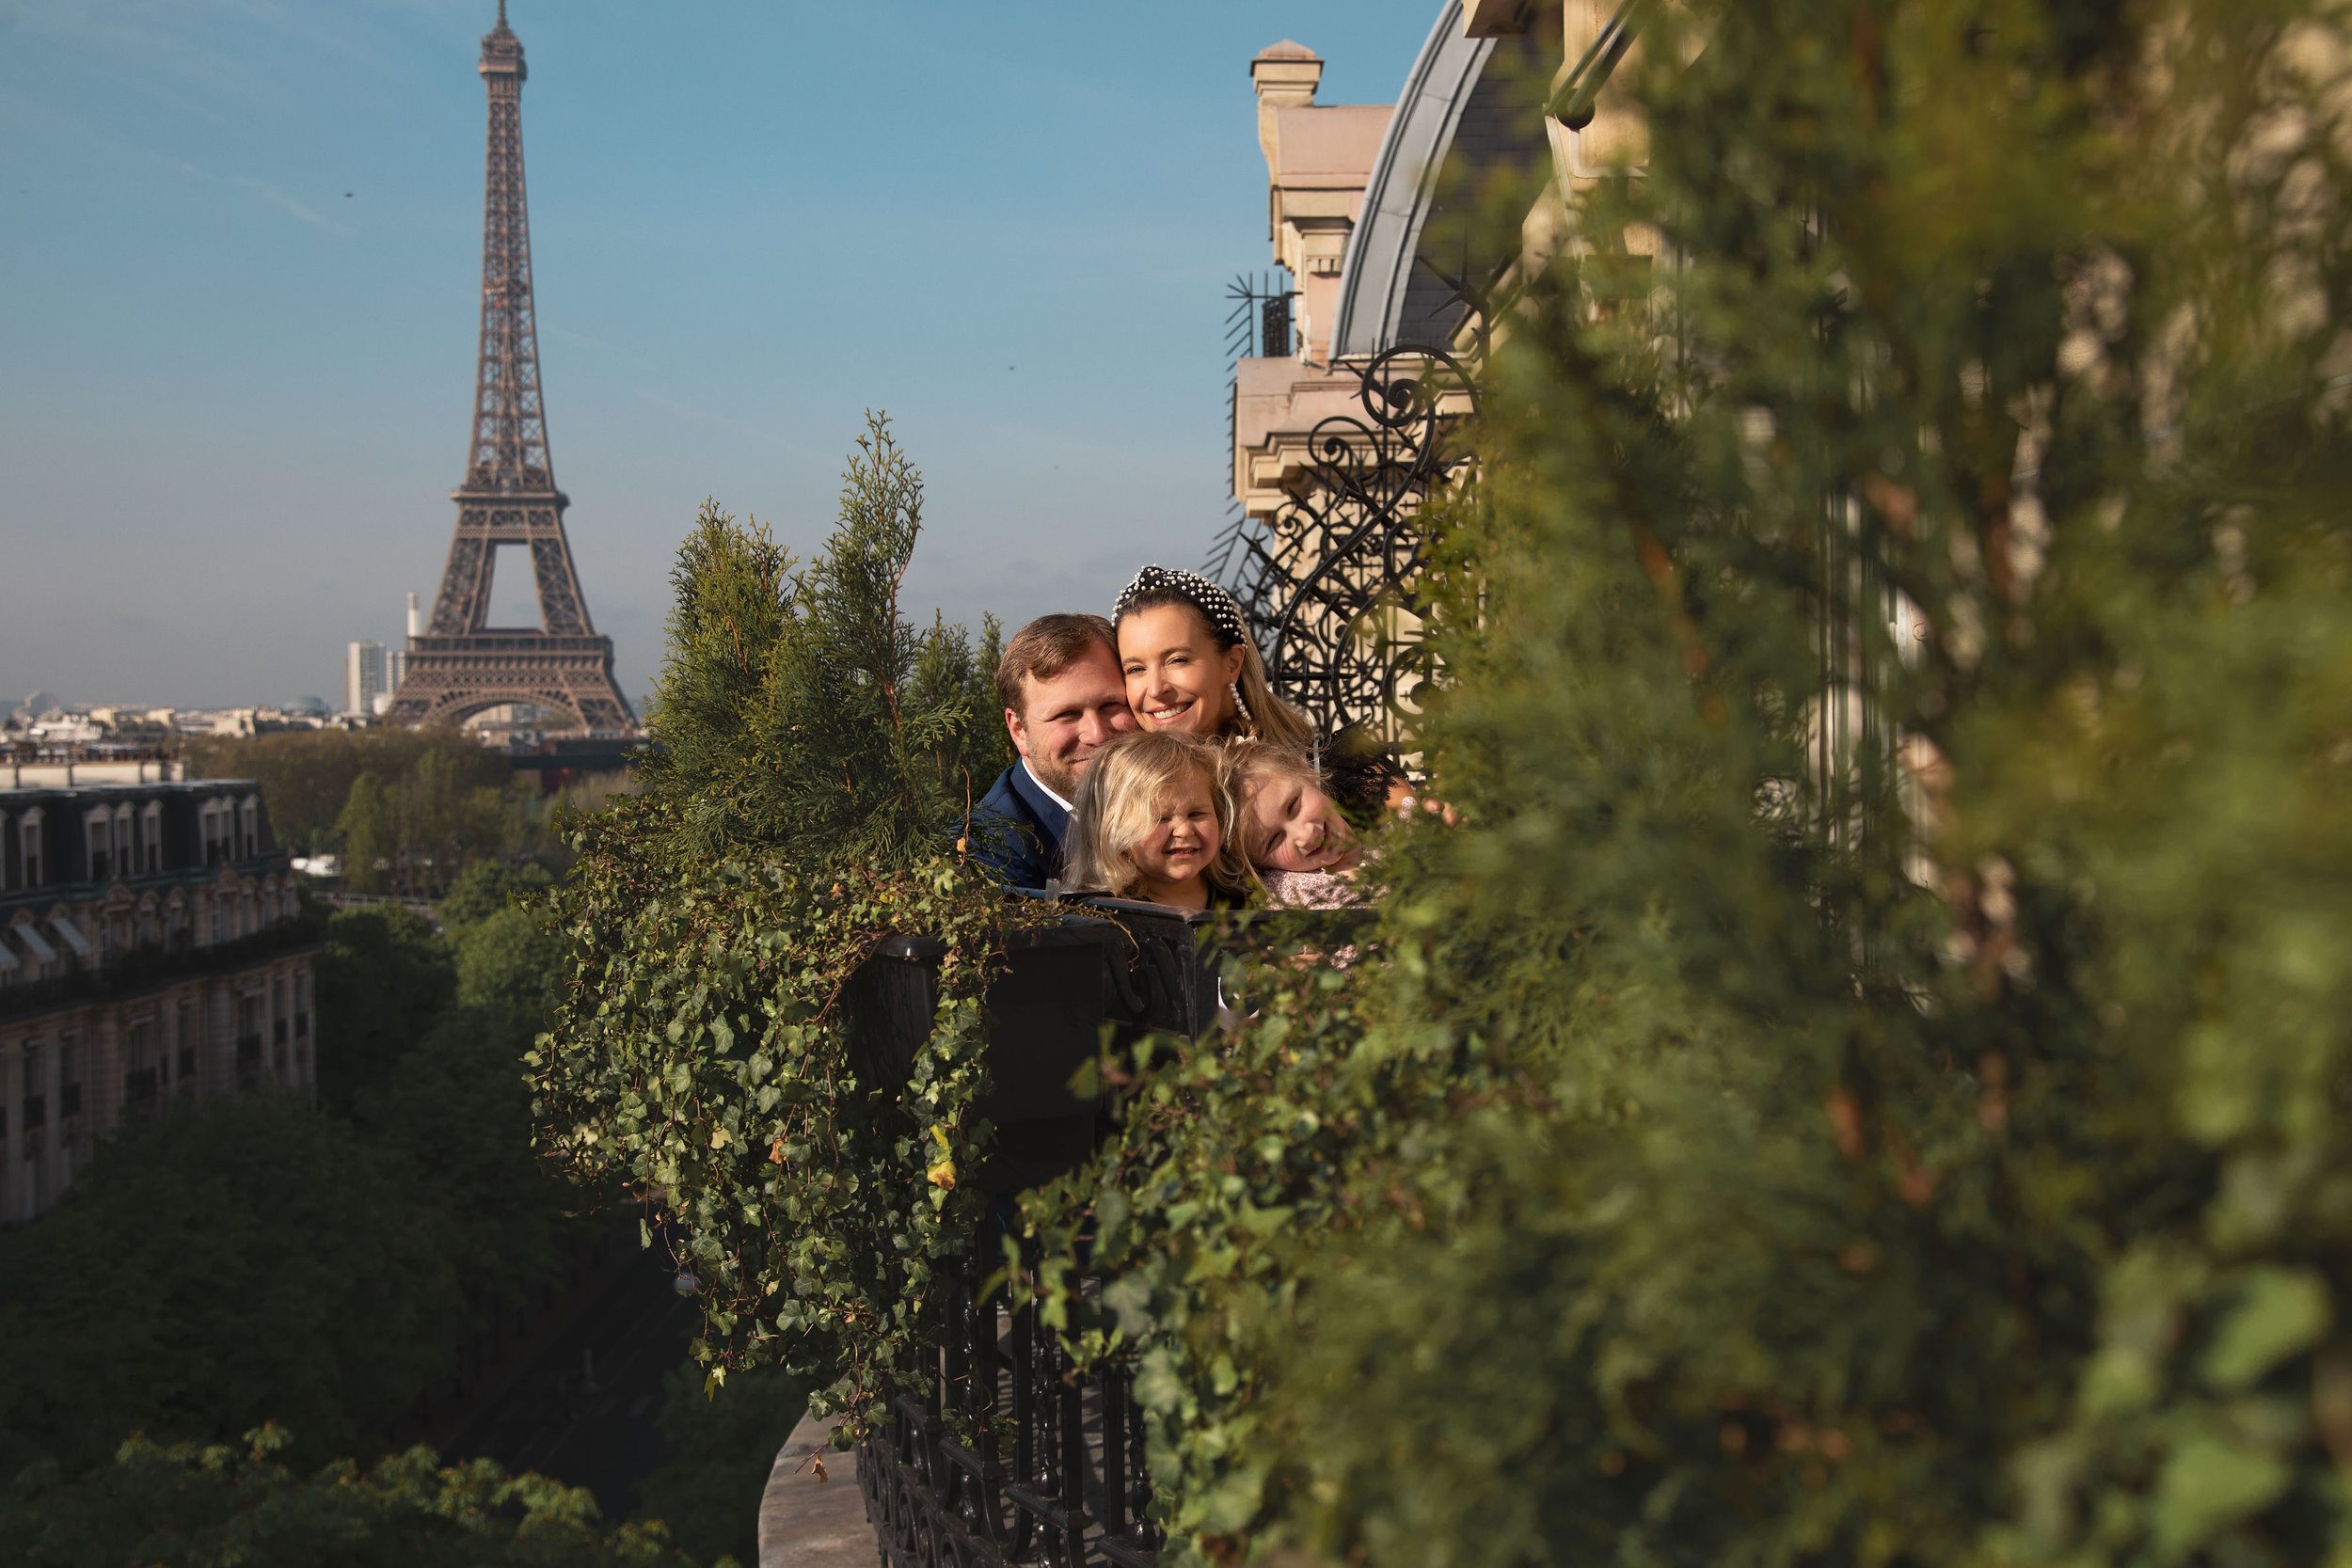 A family photoshoot was maybe the smartest last-minute decision I made as a result of Instagram hashtag stalking as we boarded the plane for Paris. Sure, we didn't have coordinated outfits or fresh blowouts, but   Julie Theis   made the experience so special- and these photos are better than any sidewalk souvenirs.